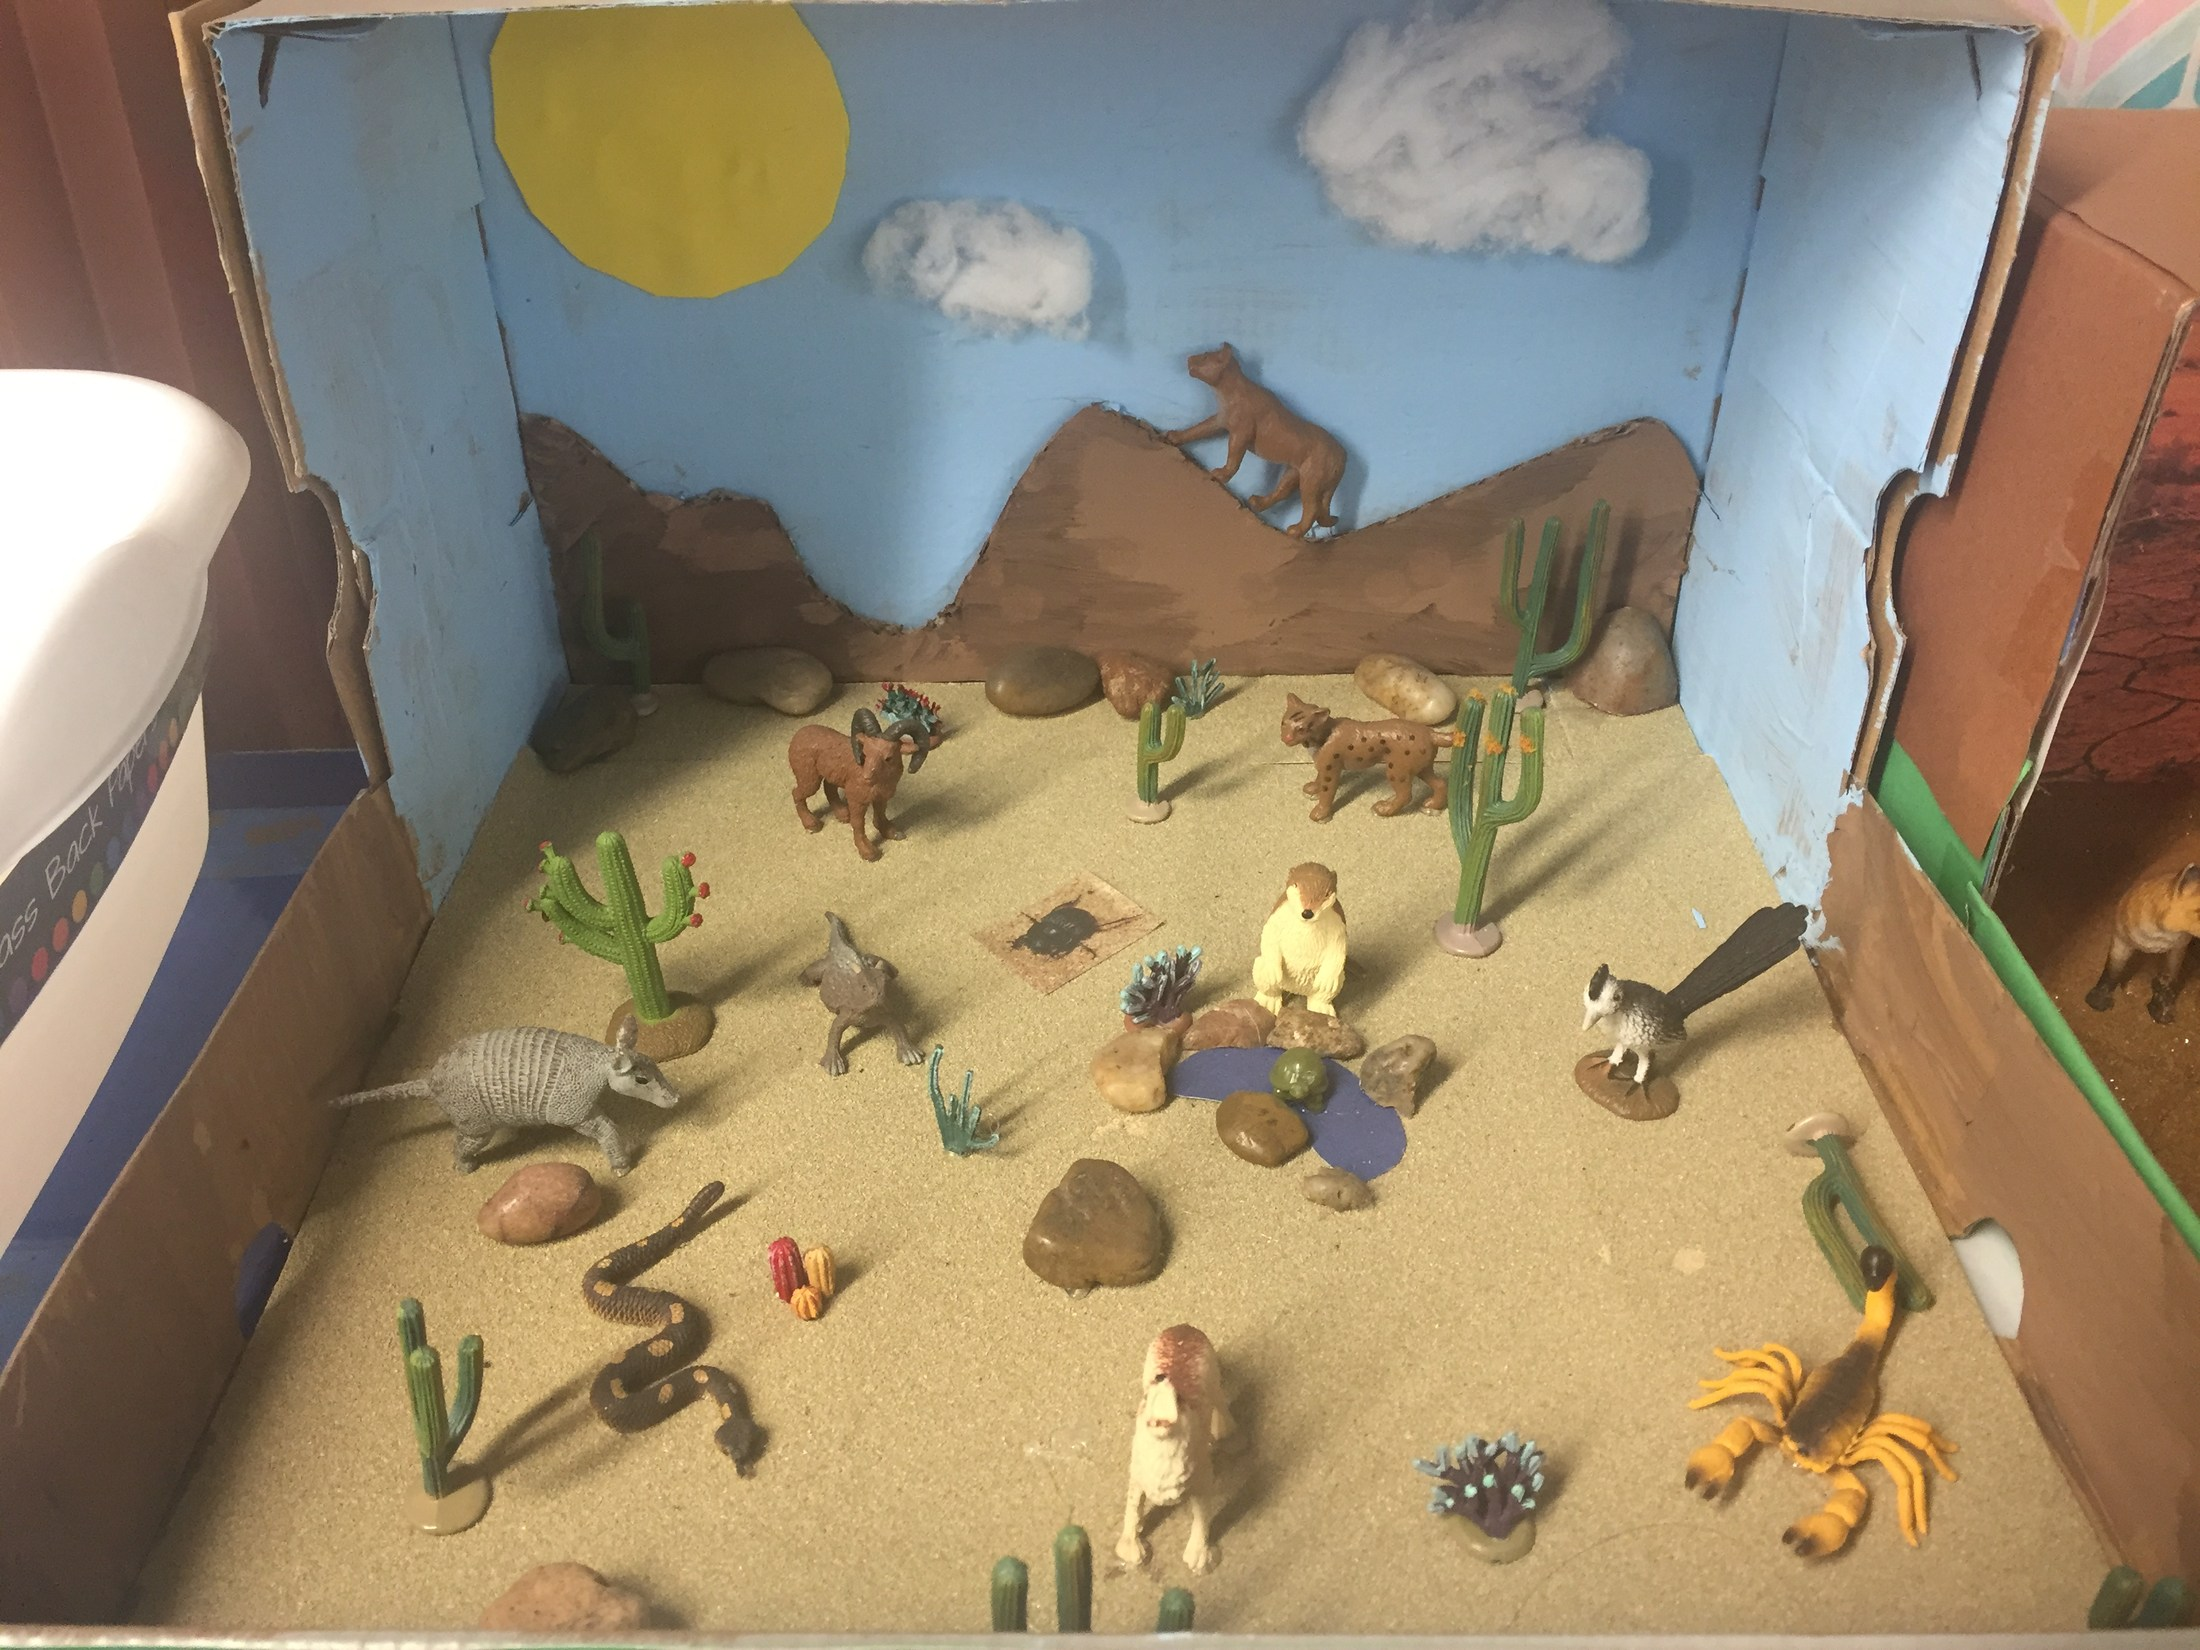 Ecosystem Diorama – Mrs  Michelle Turner – Olive Drive Elementary School